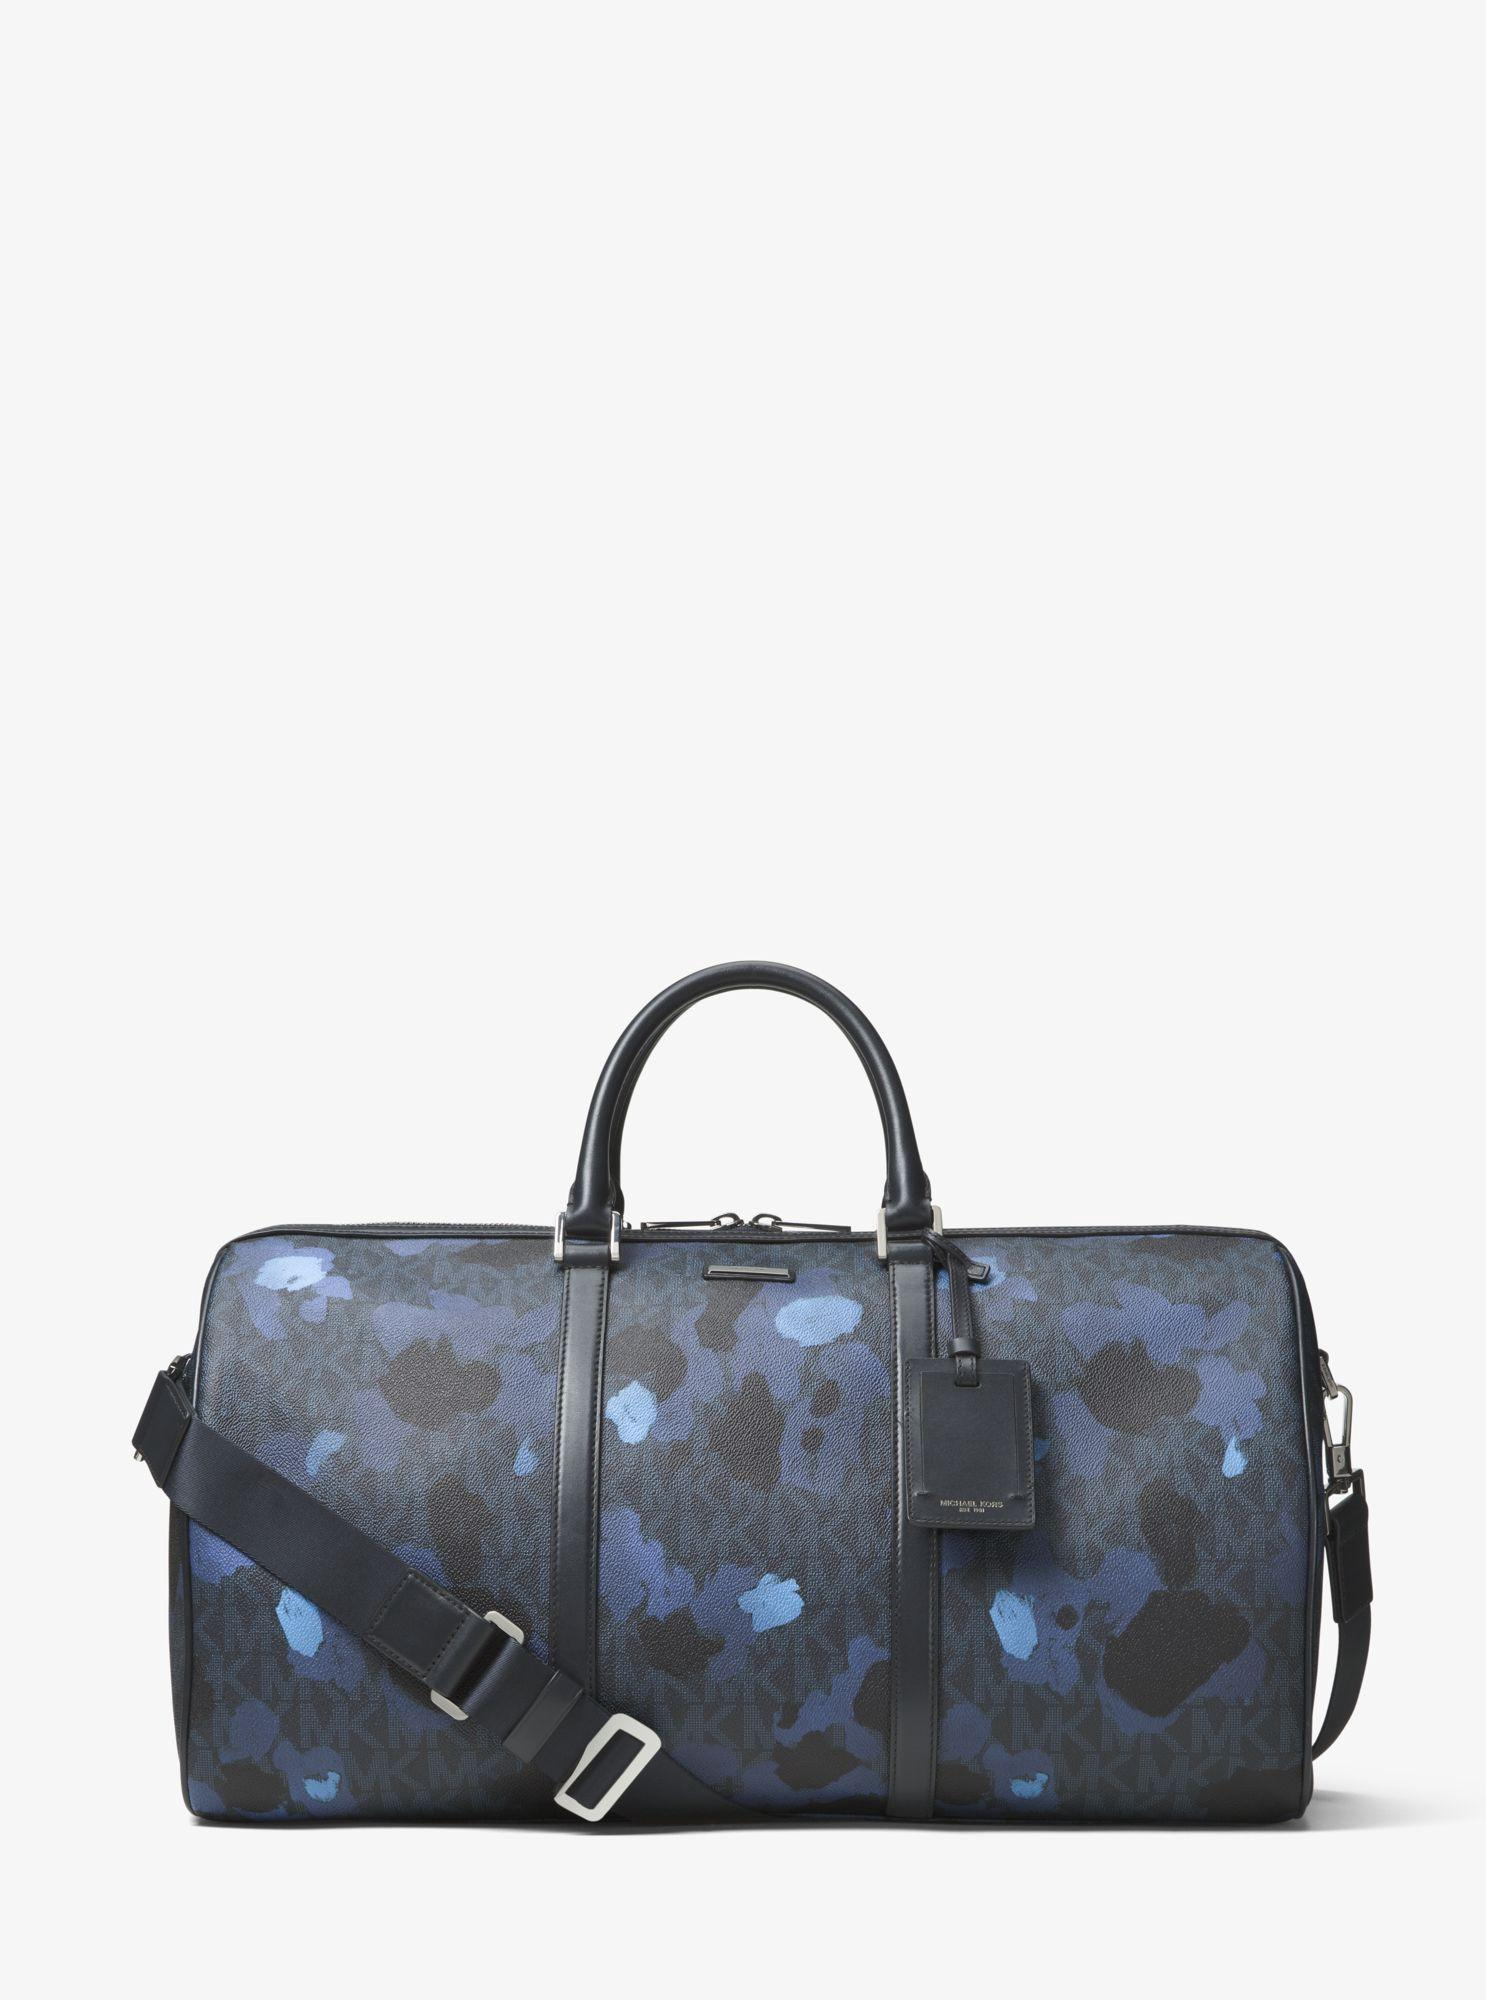 54a8282b988bb6 Michael Kors Jet Set Painterly Camo Large Duffel Bag In Midnight ...